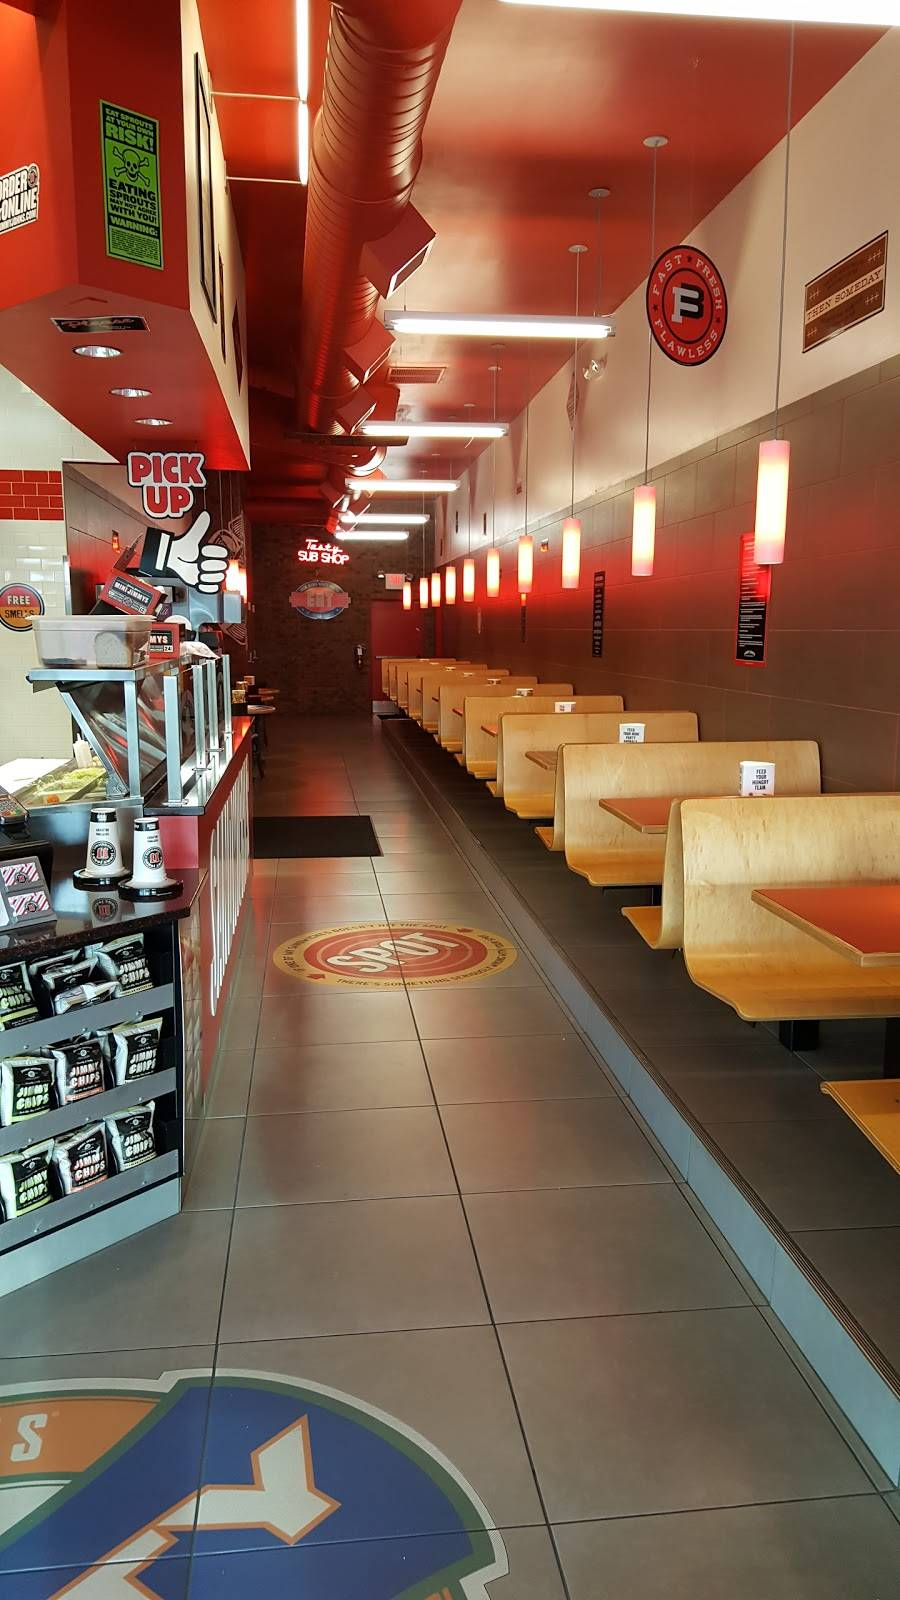 Jimmy Johns | meal delivery | 9308 US-19 Ste. 8A, Port Richey, FL 34668, USA | 7278447000 OR +1 727-844-7000